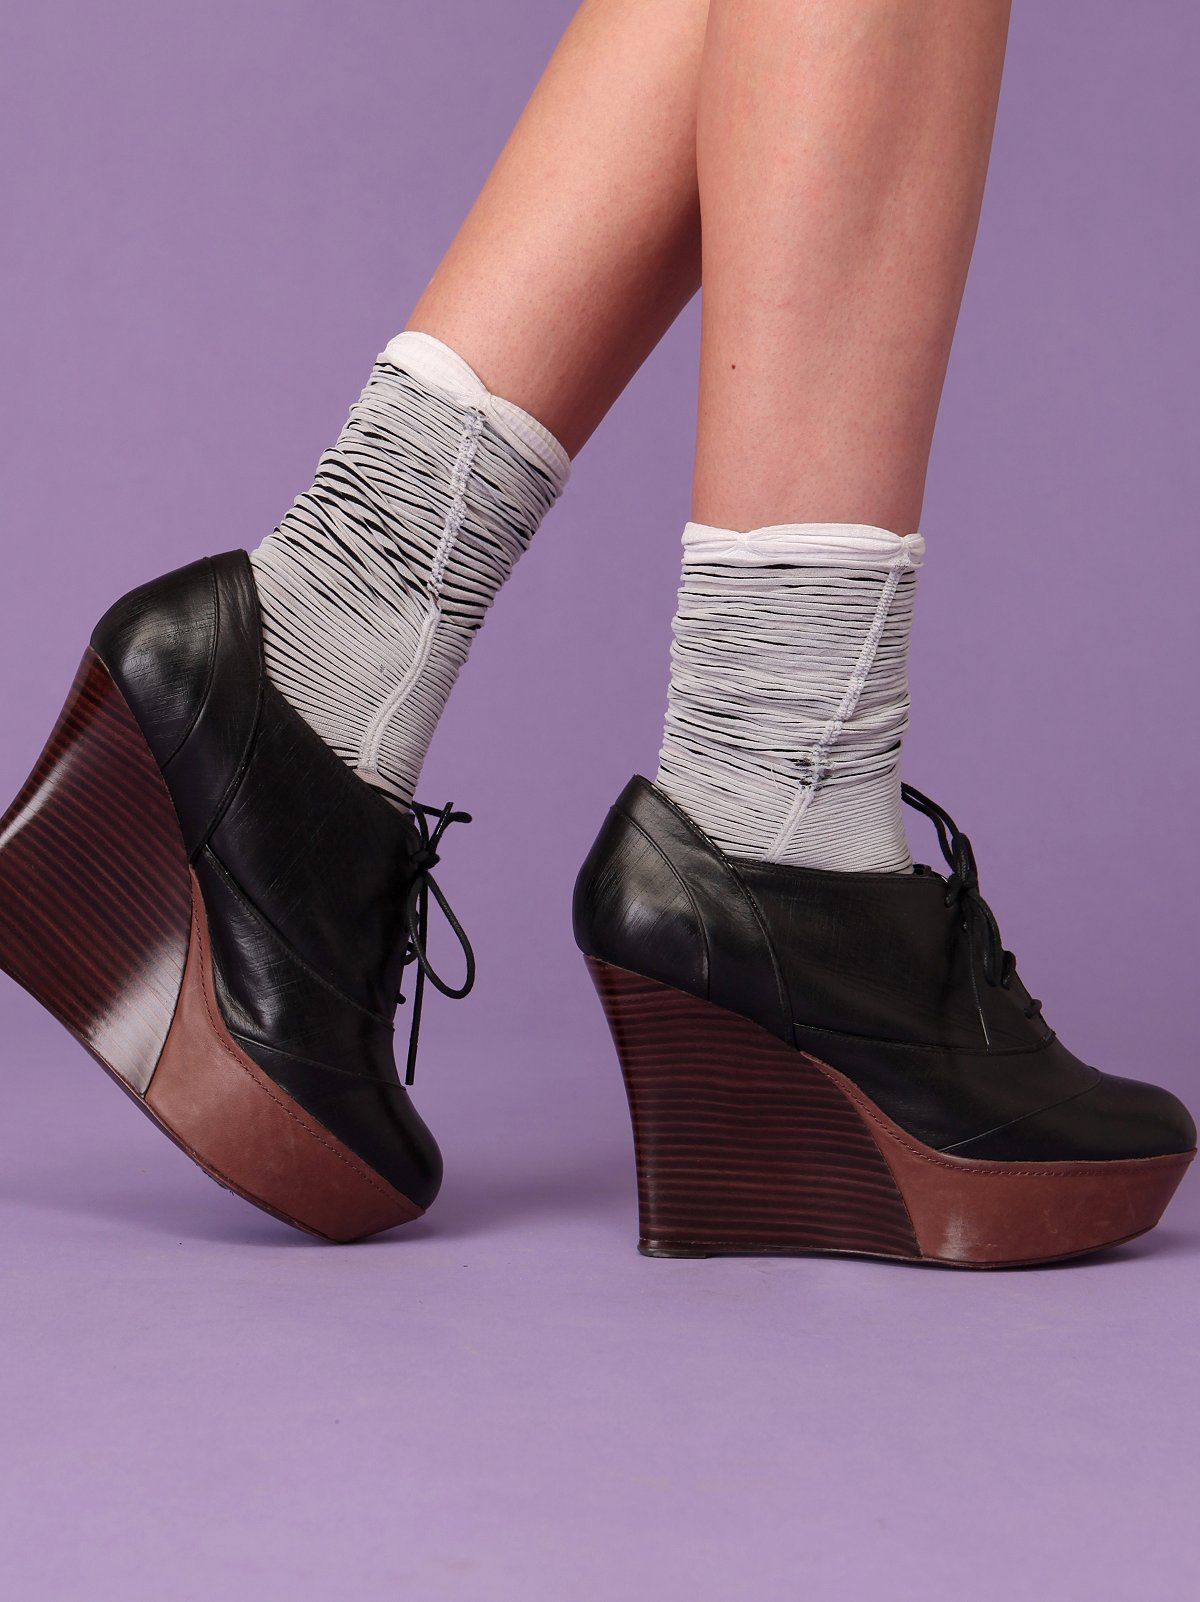 Striped Rouched Socks by Emilio Cavallini